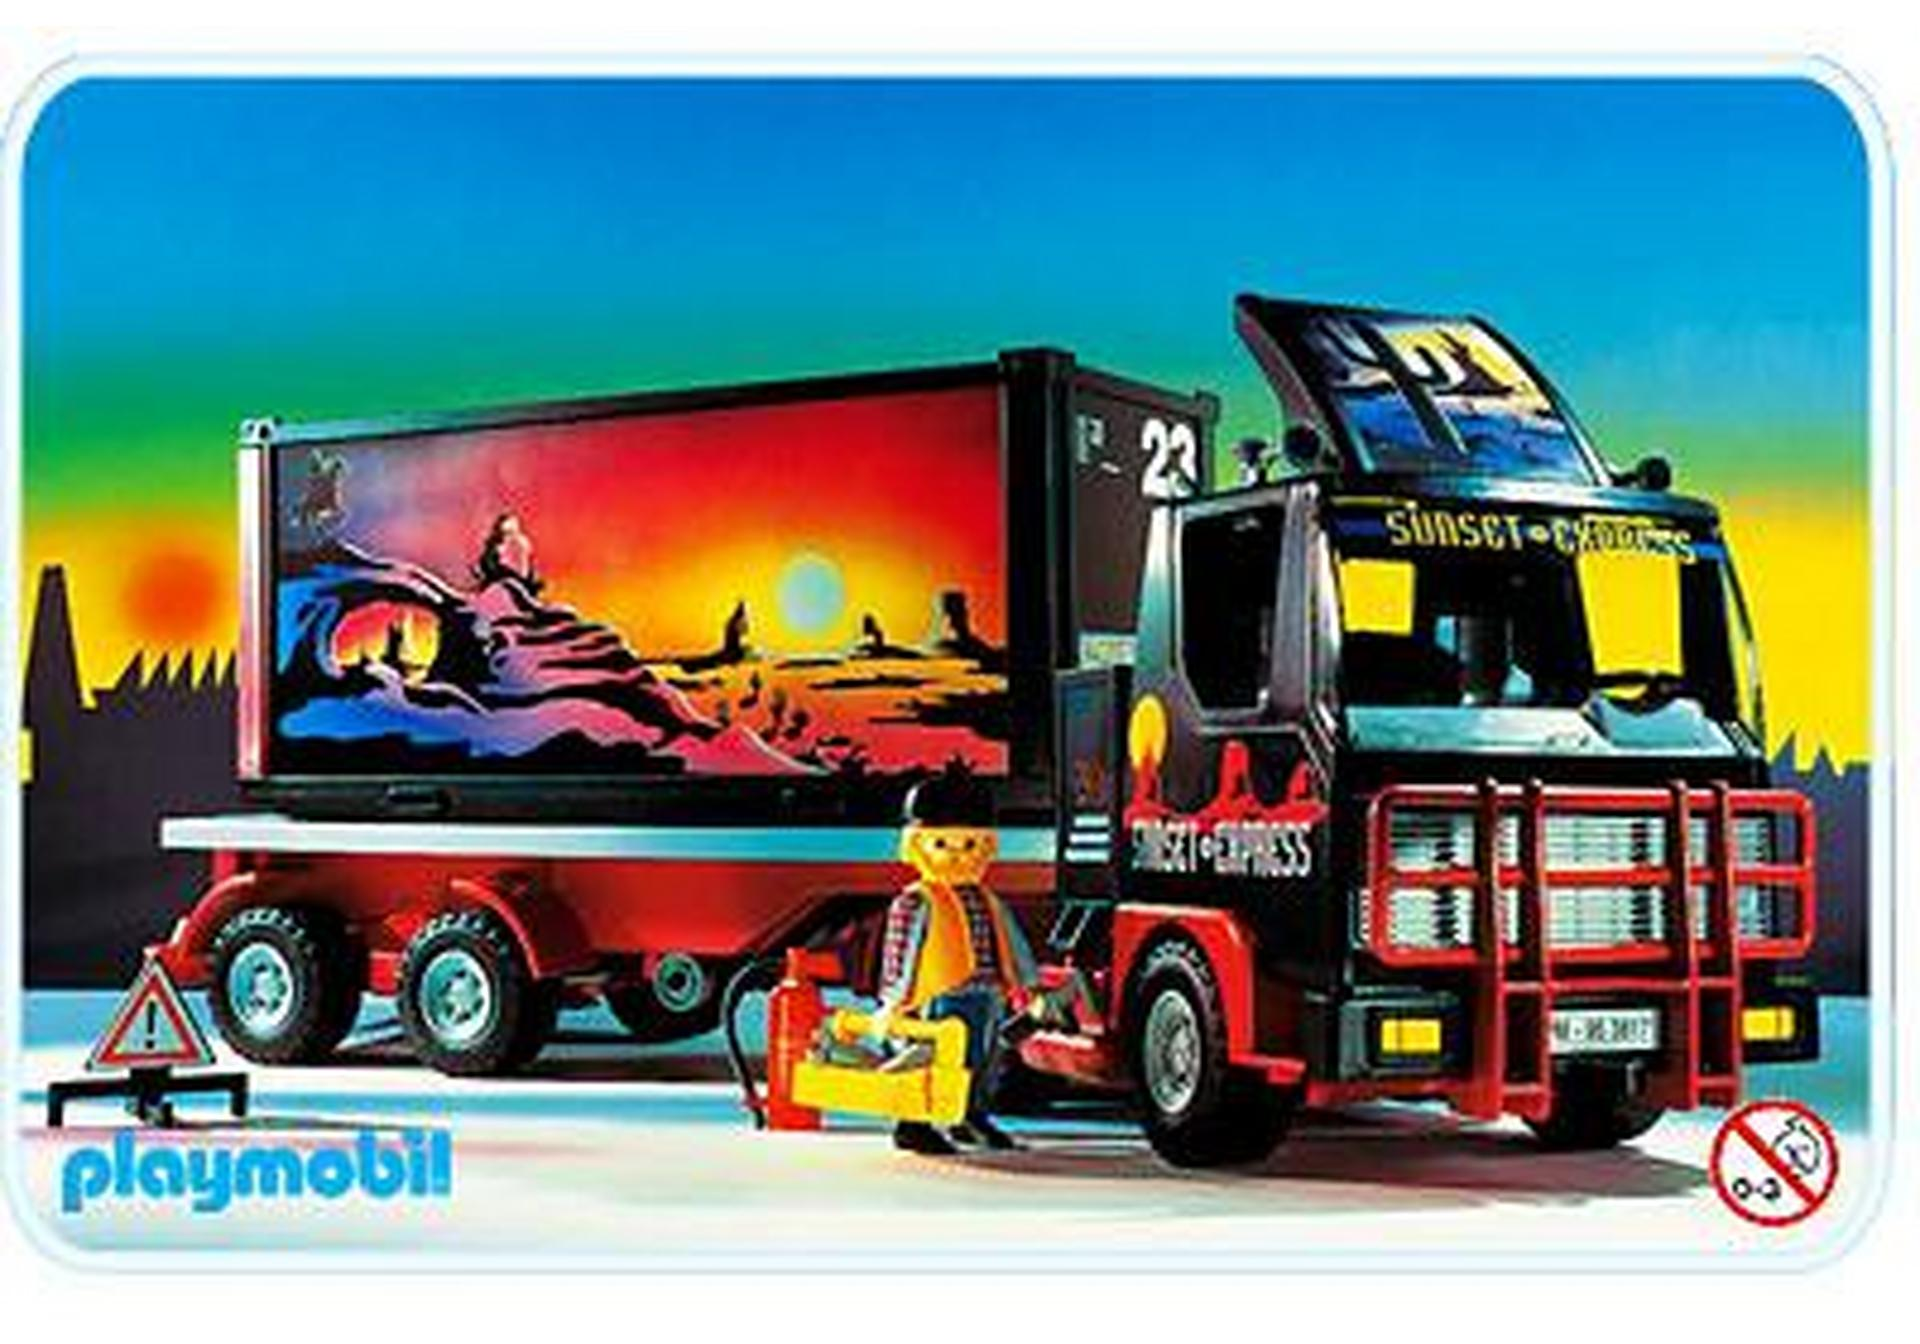 Camion remorque container 3817 a playmobil france - Playmobil camion ...